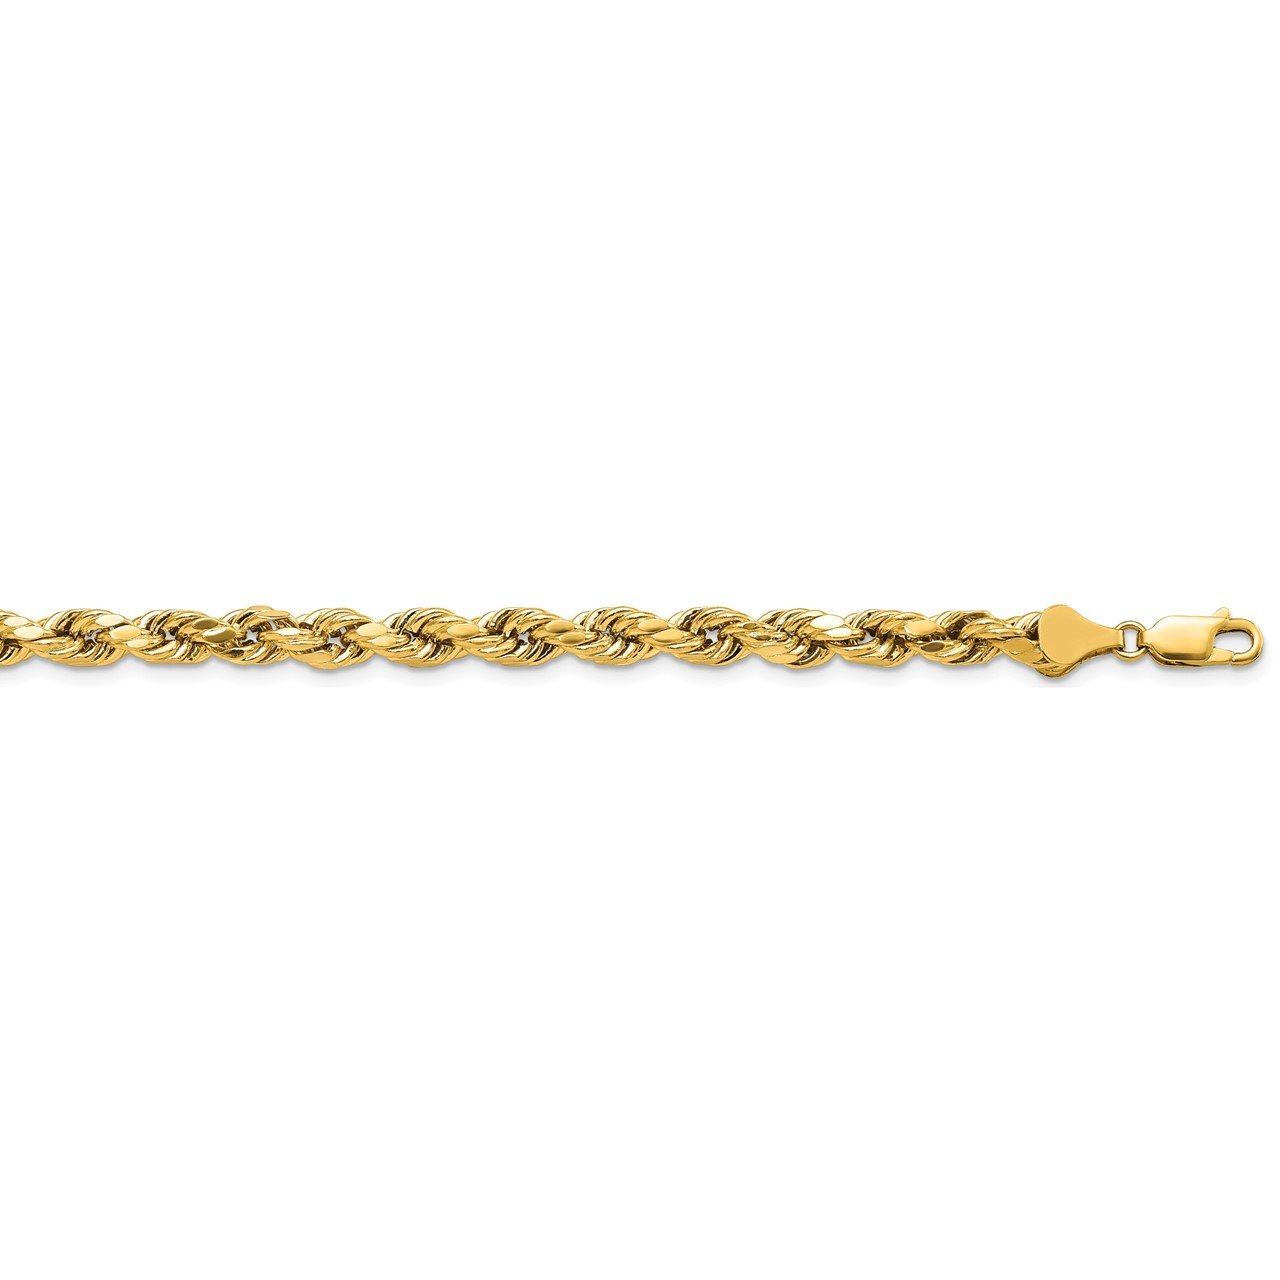 14k 5.5mm Semi-solid D/C Rope Chain